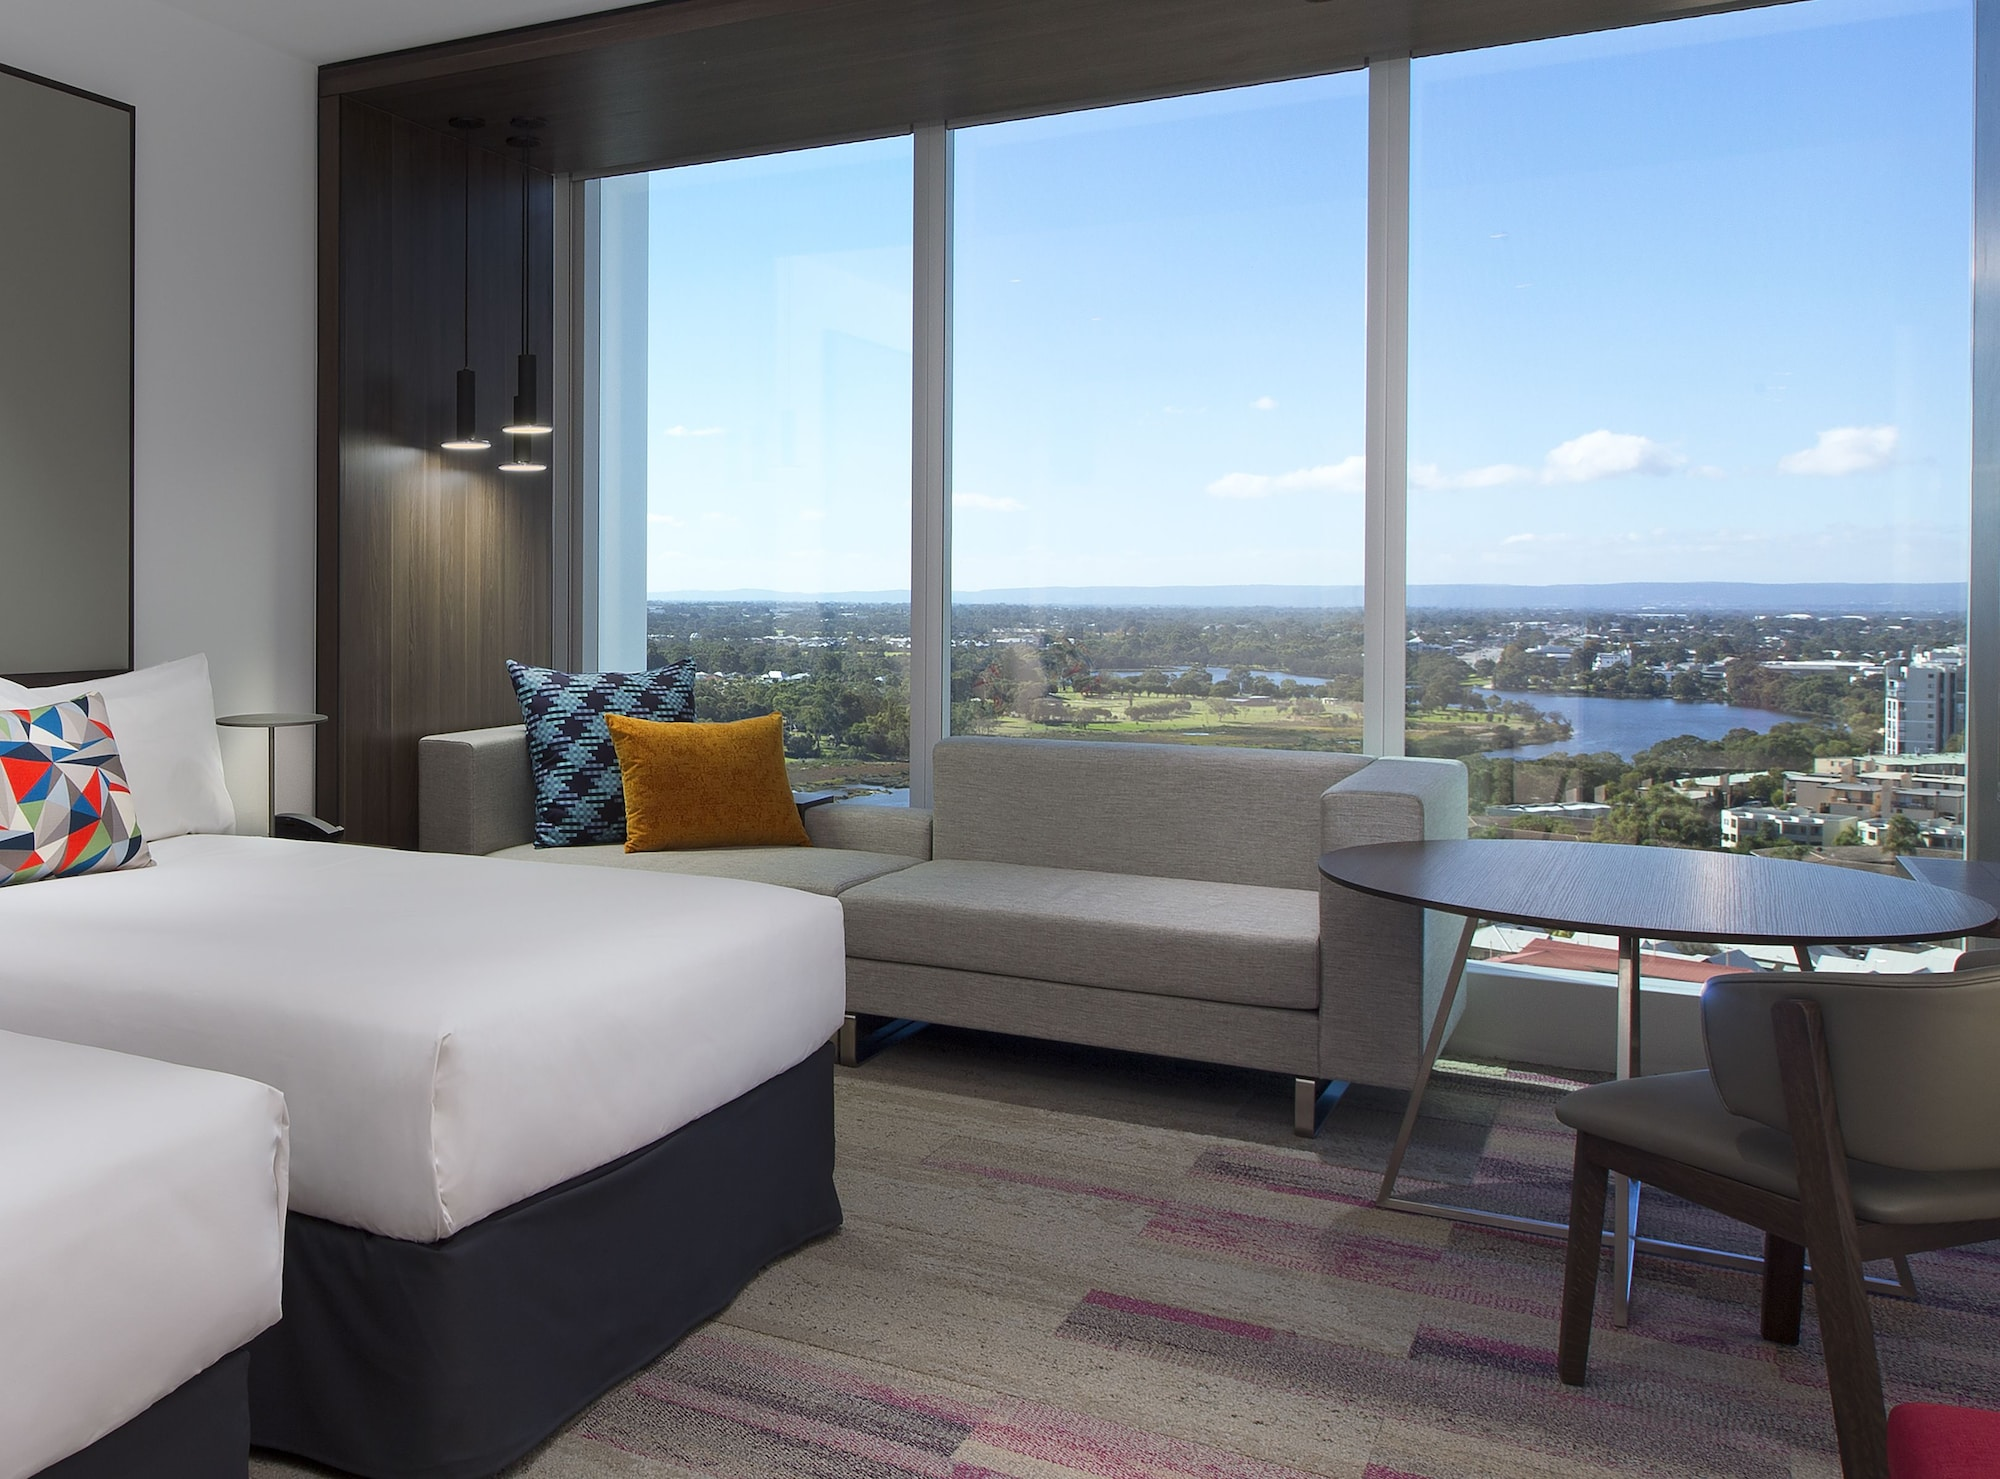 aloft, 2 Double Beds